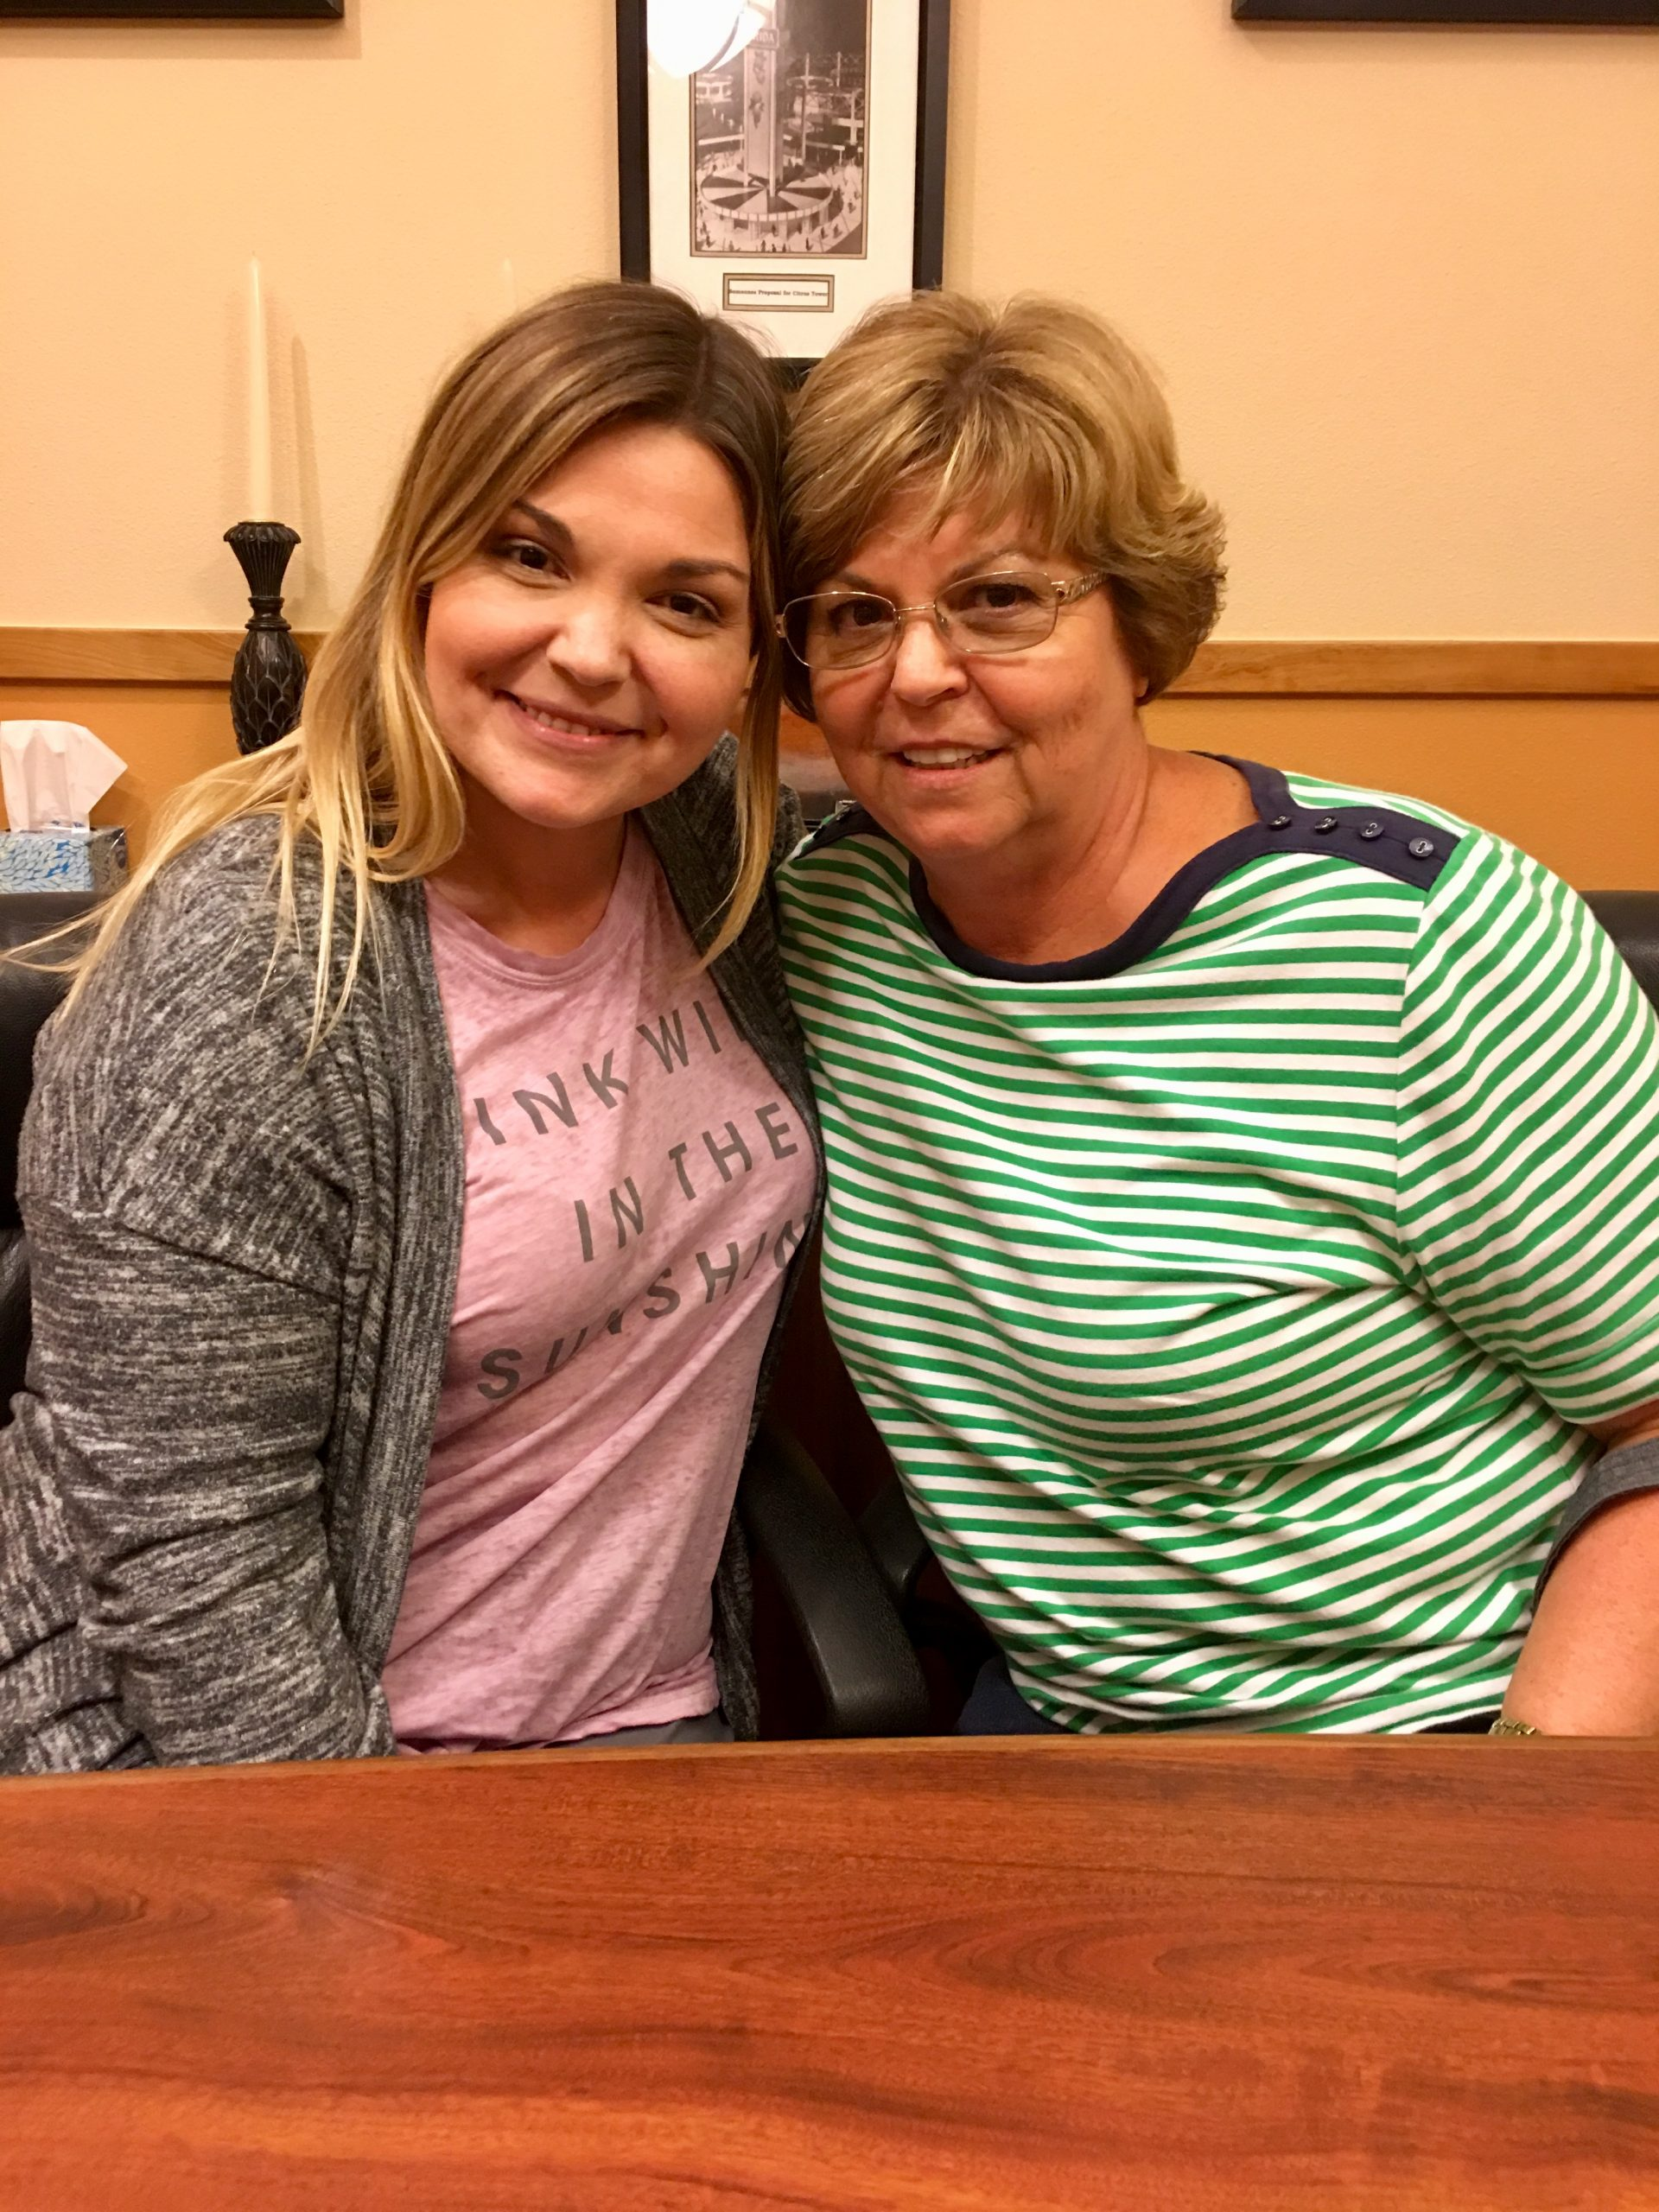 Stacey and her mother smile after a successful closing!